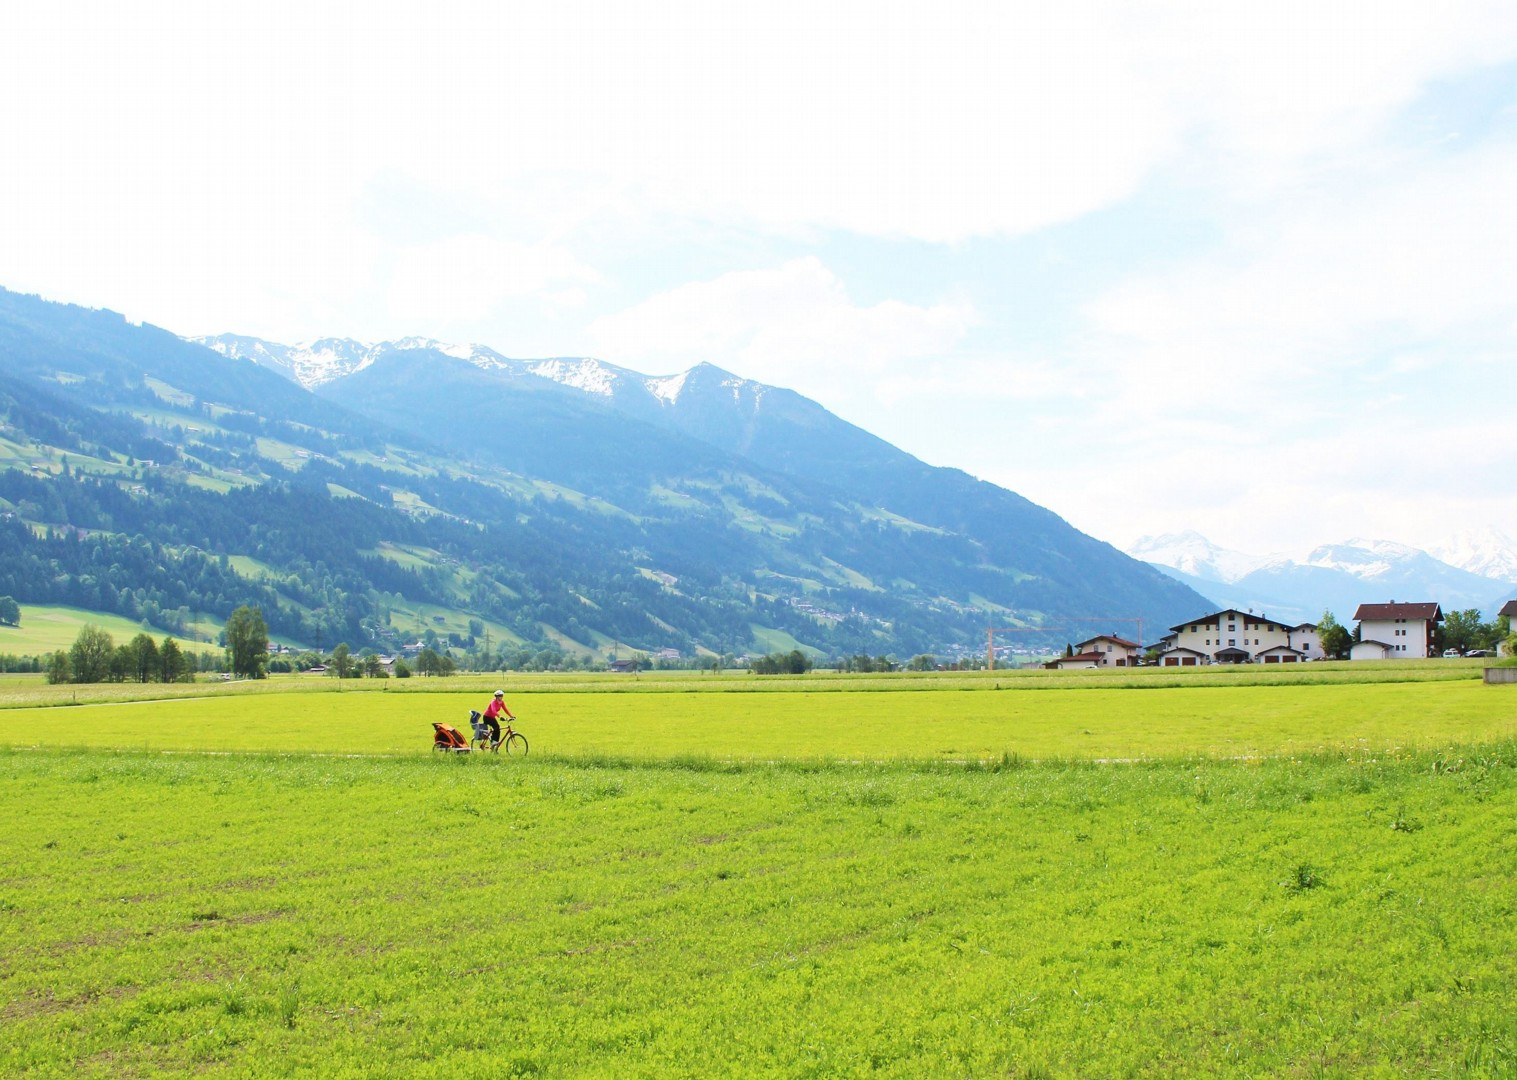 beautiful-scenery-austria-cycling-adventure.jpg - NEW! Austria - Tauern Valleys - Self-Guided Family Cycling Holiday - Family Cycling